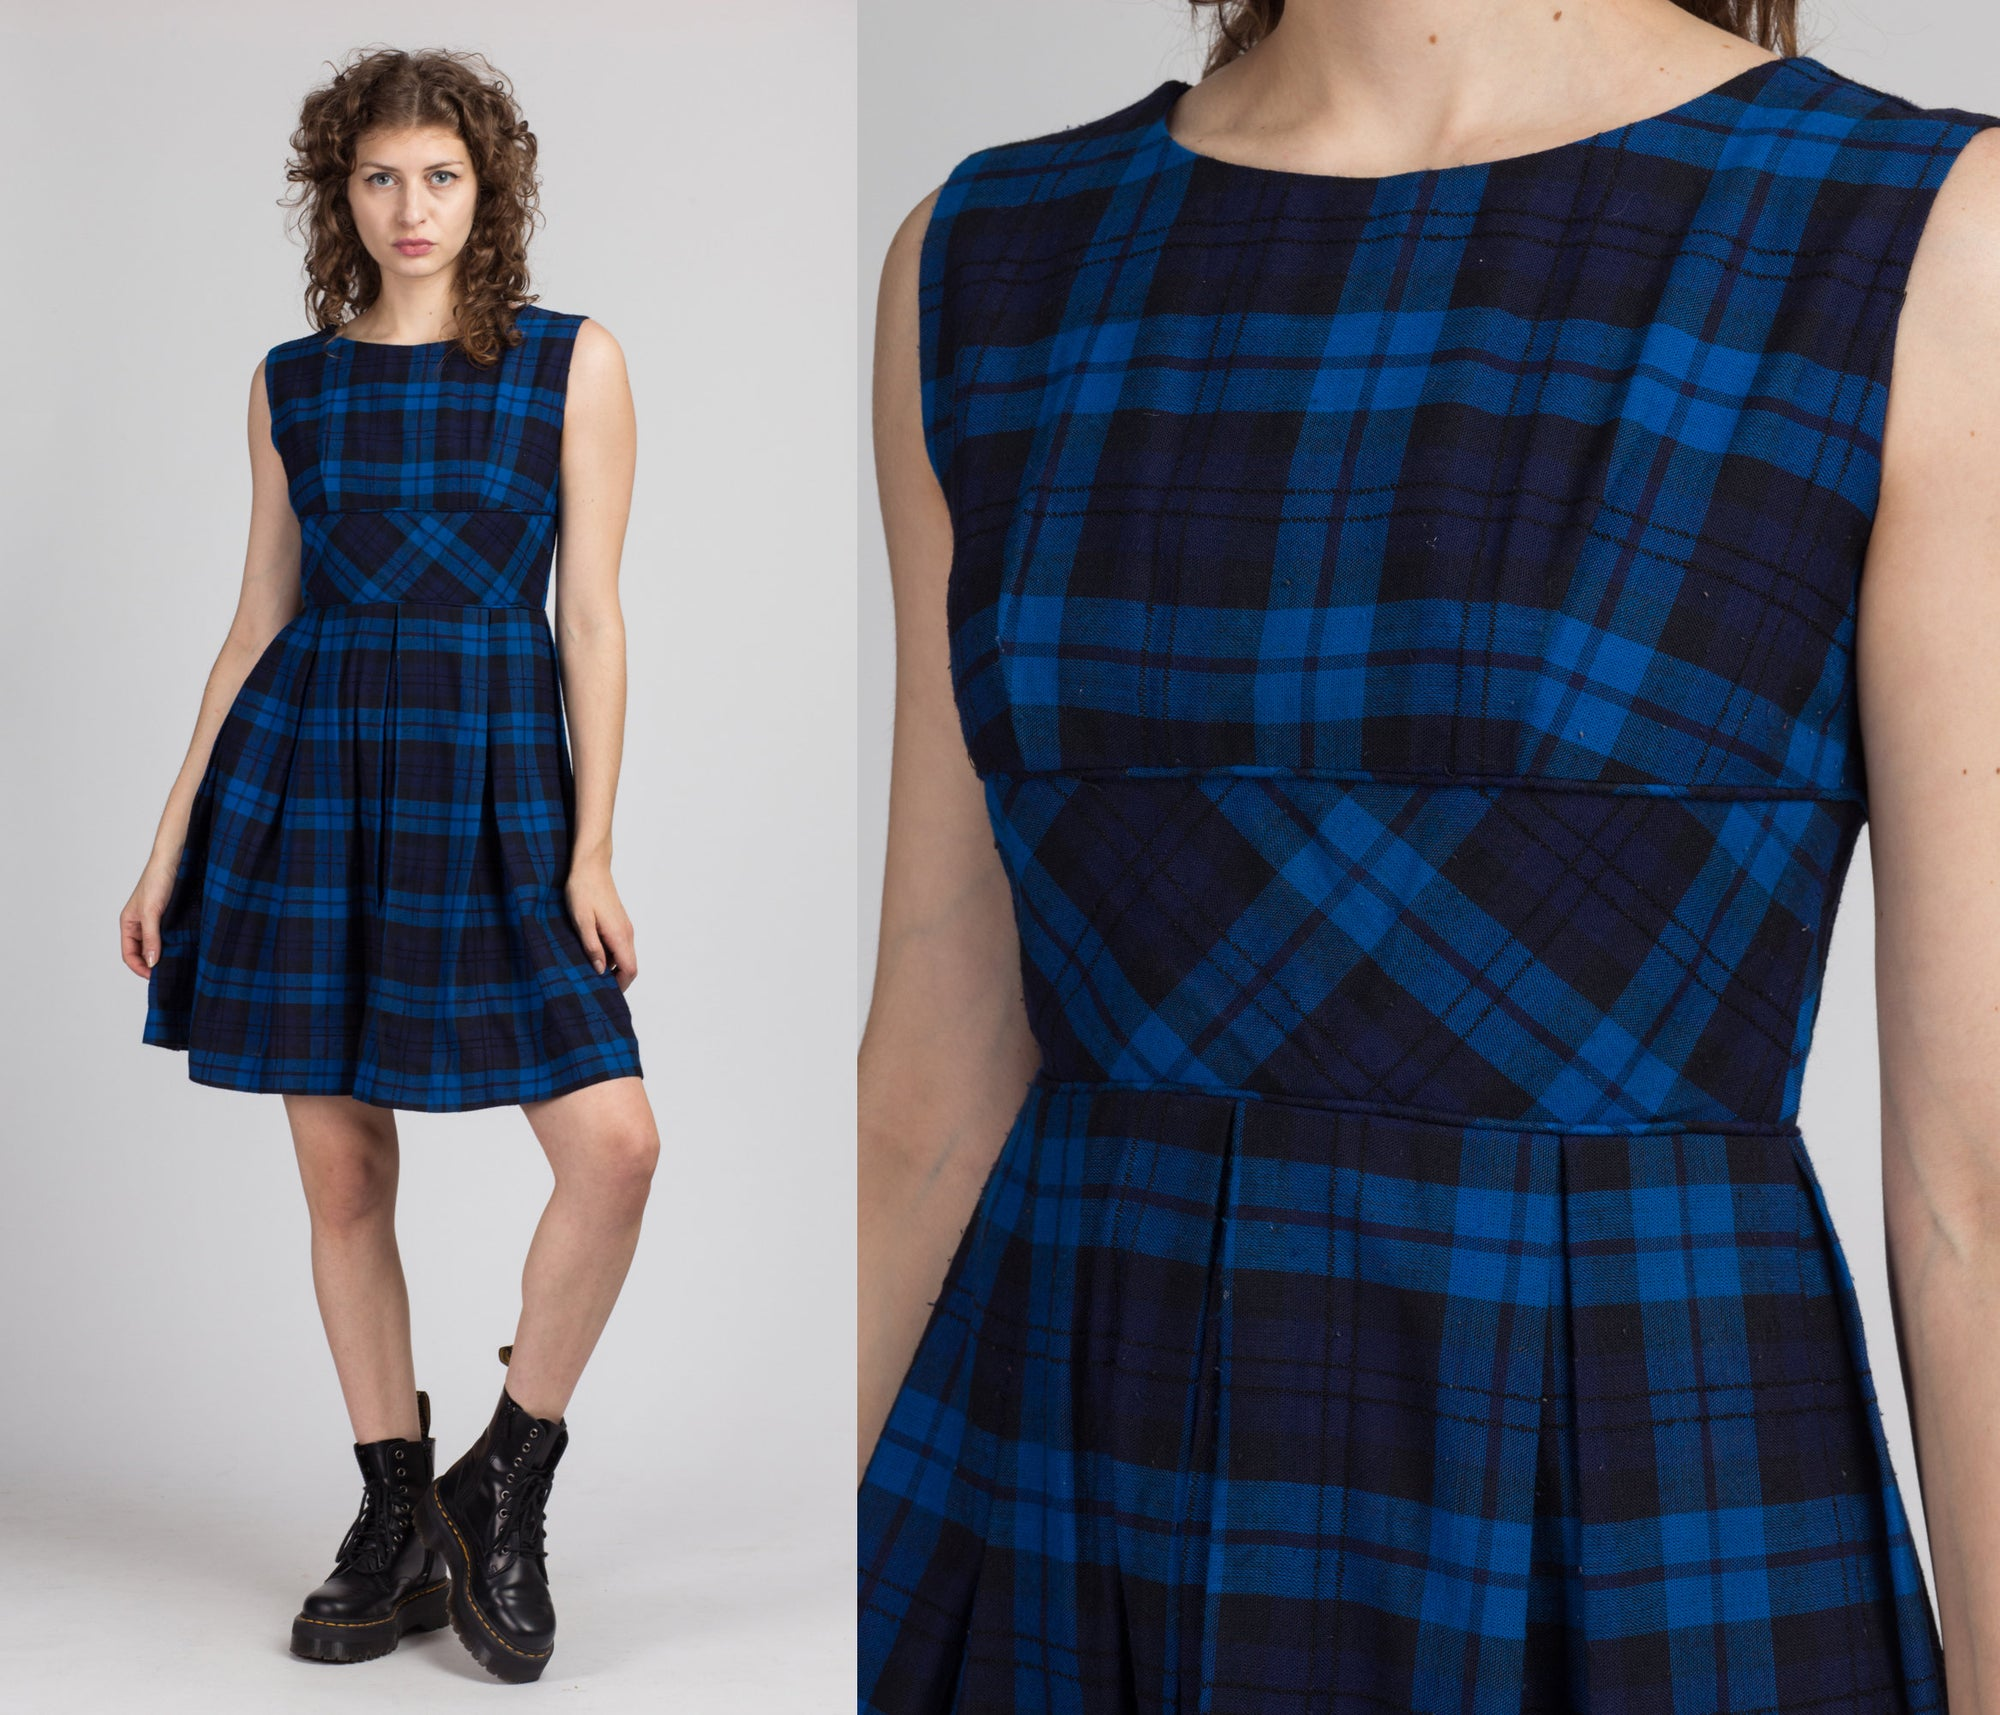 50s 60s Blue & Black Plaid Mini Dress - Small